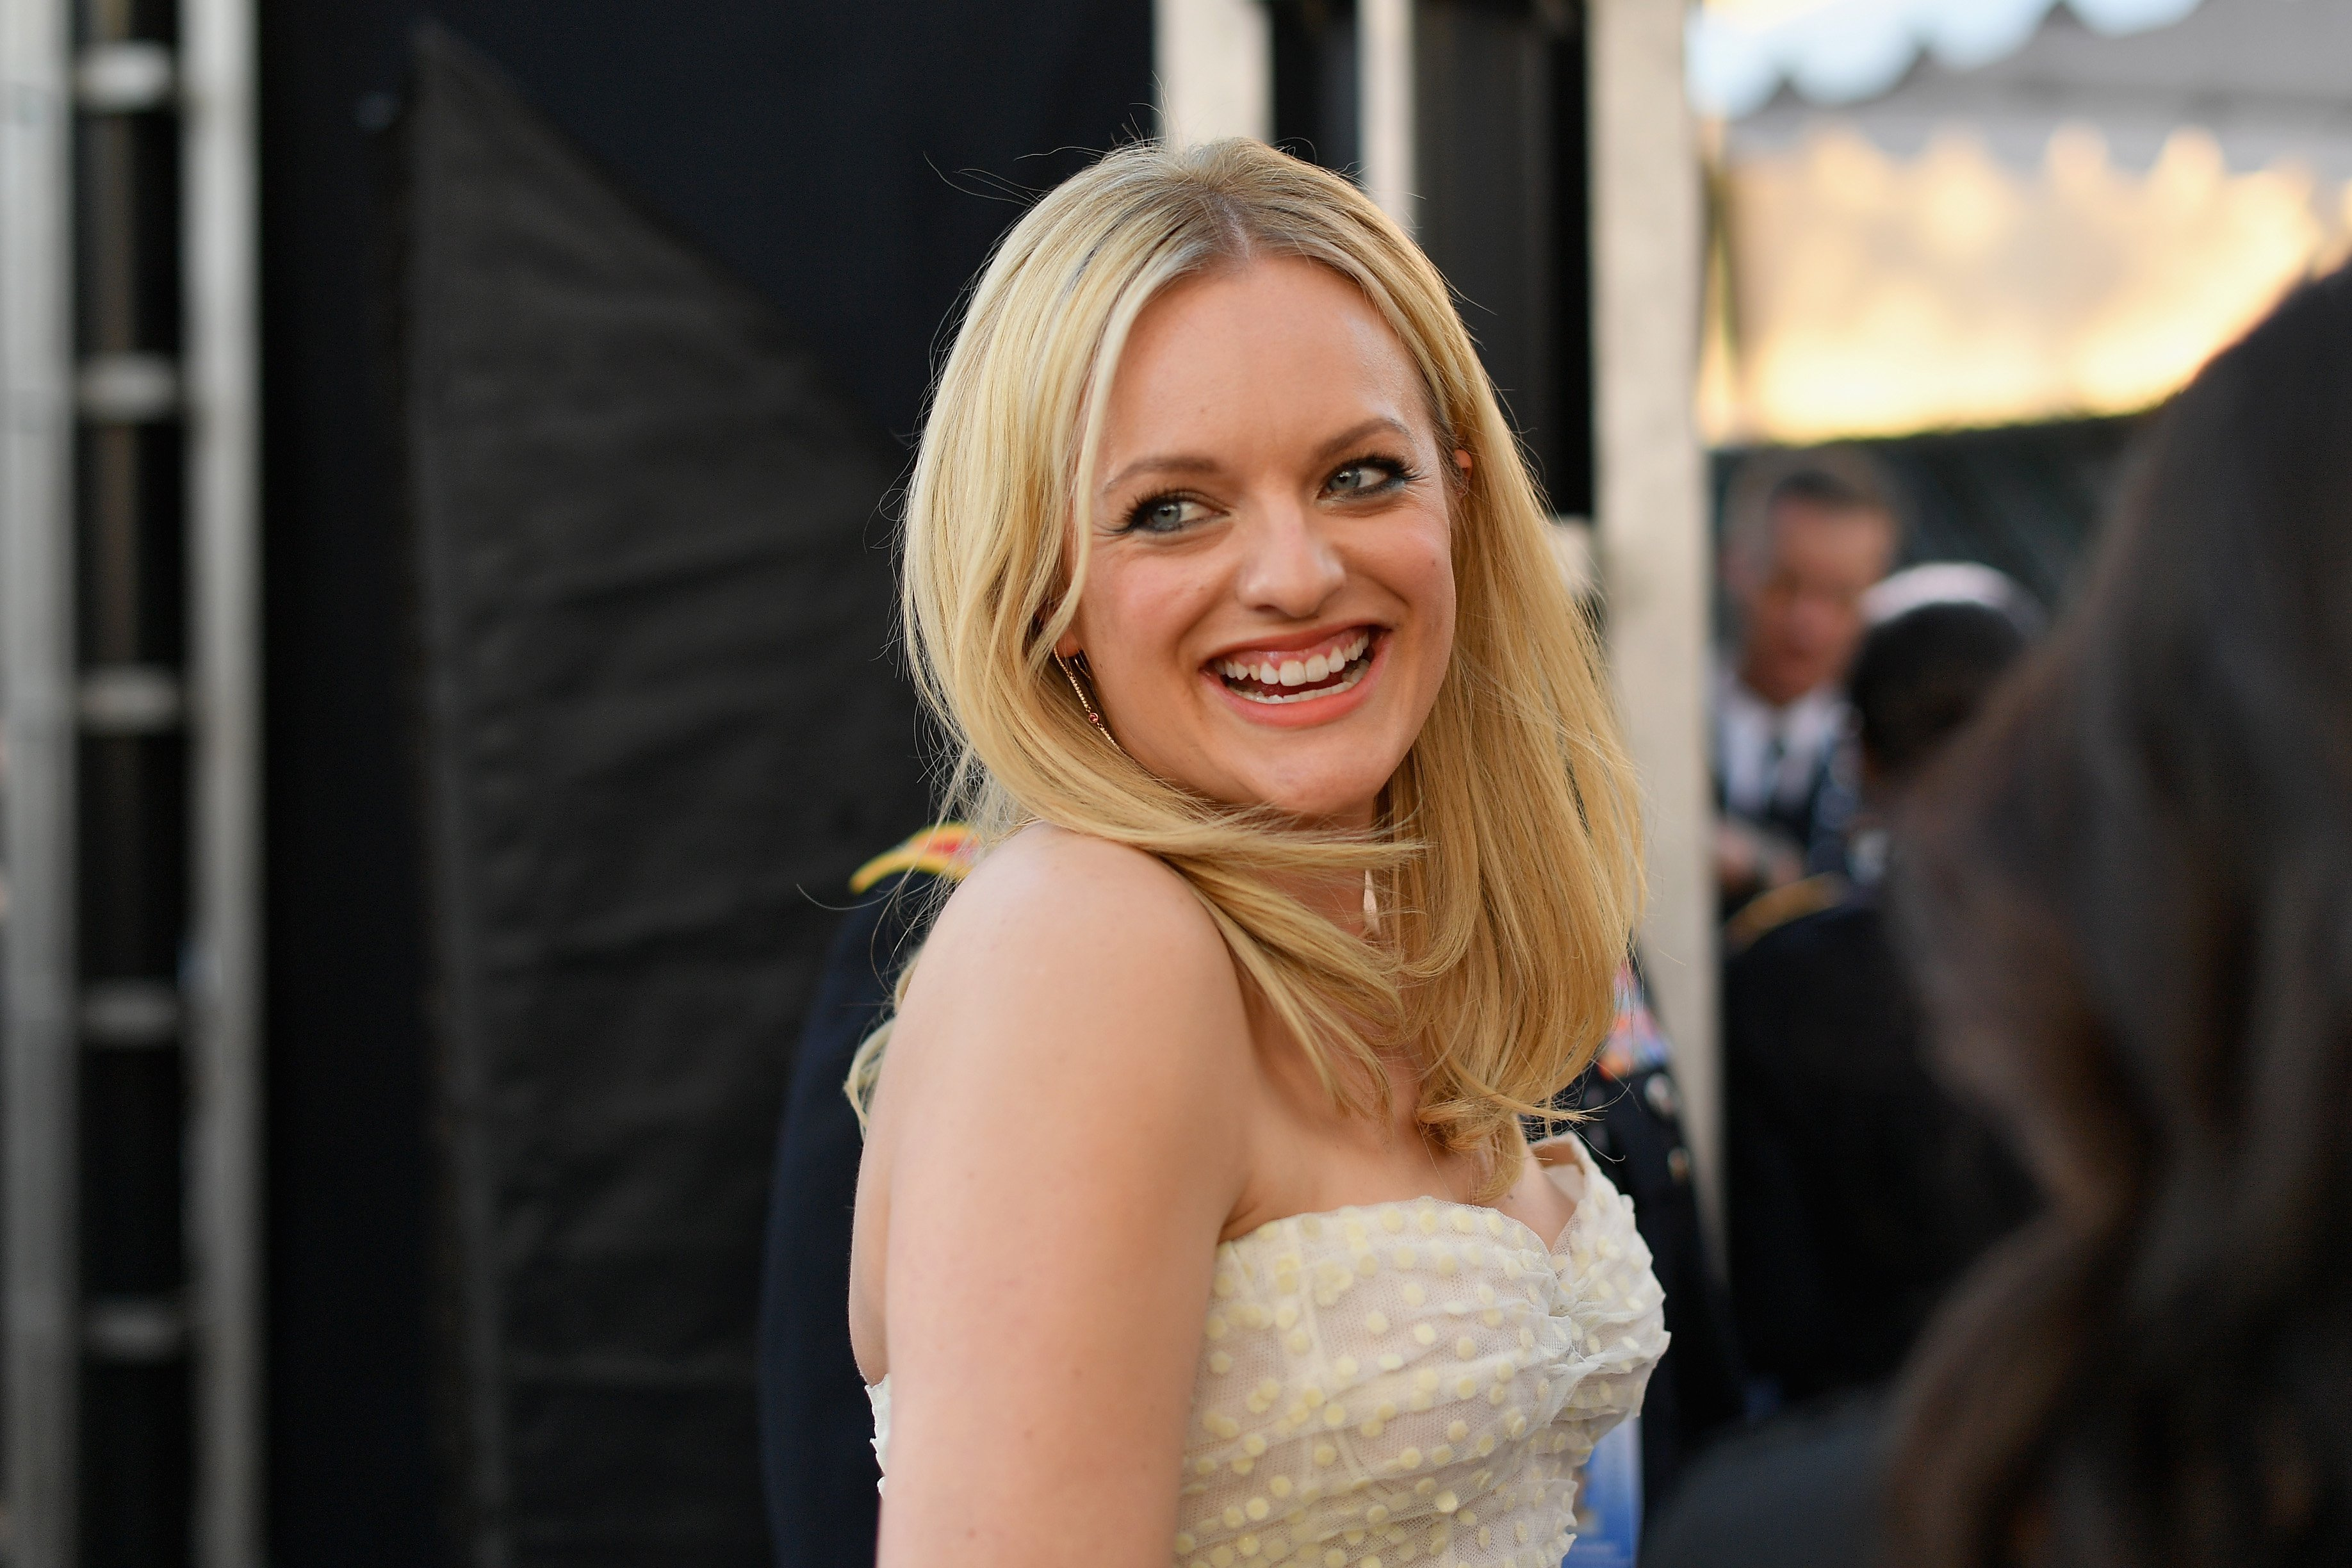 Elisabeth Moss attends the 25th Annual Screen Actors Guild Awards in Los Angeles on January 27, 2019 | Photo: Getty Images